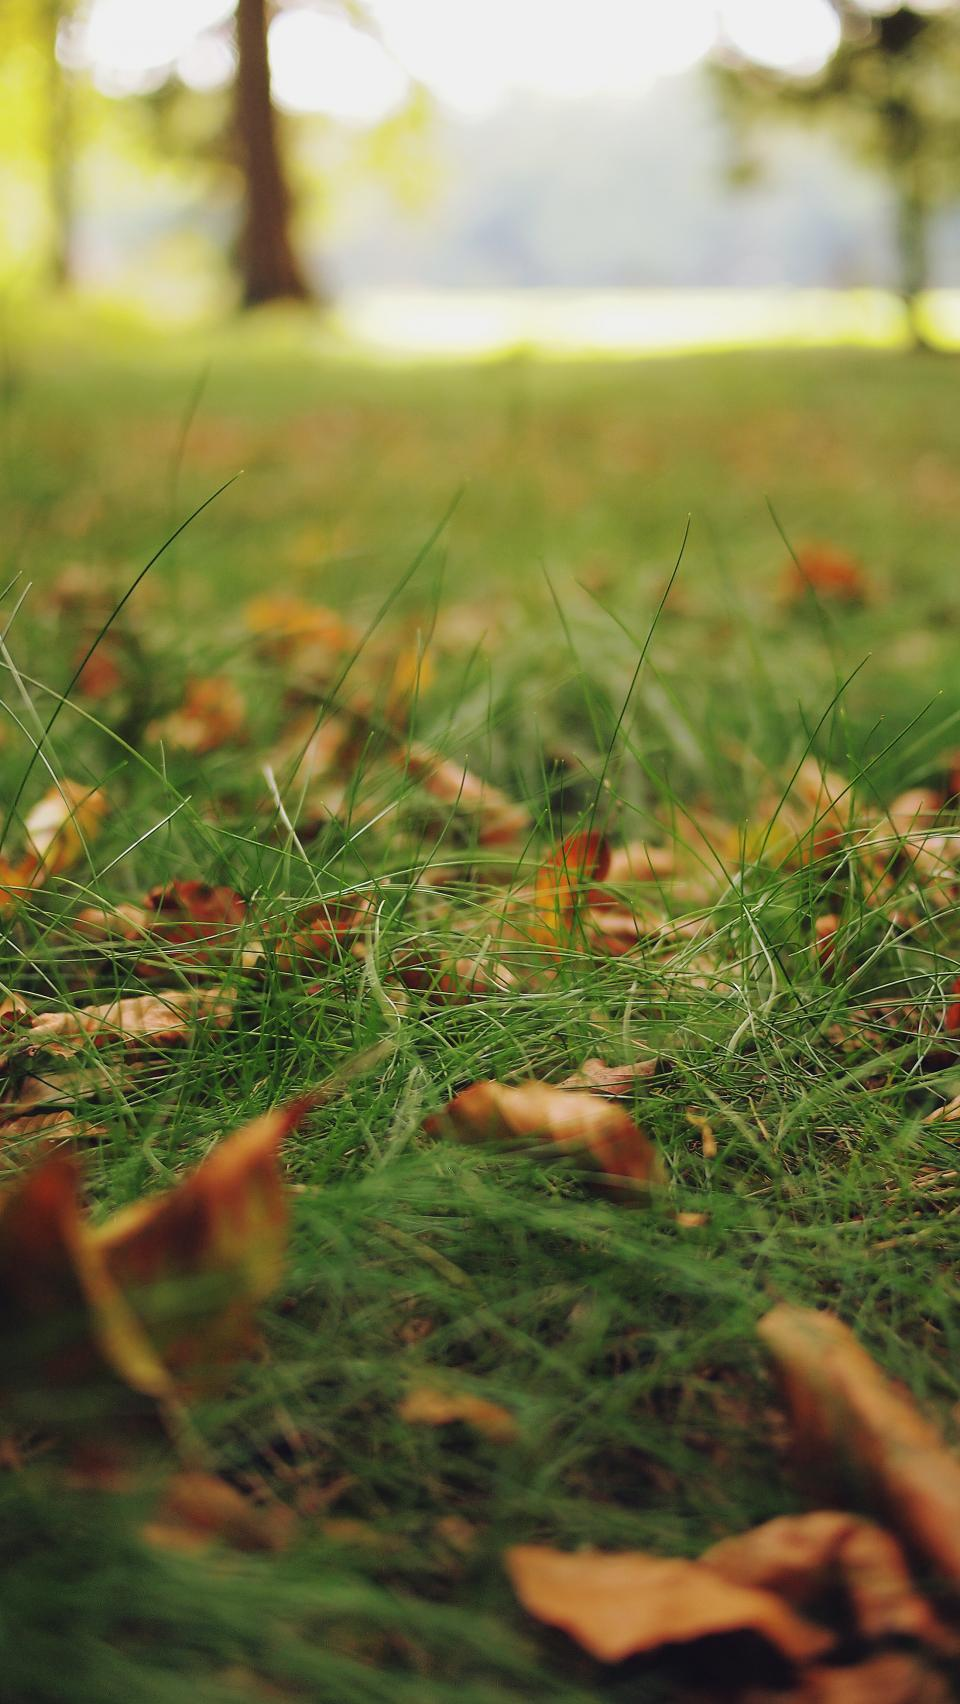 grass, leaves